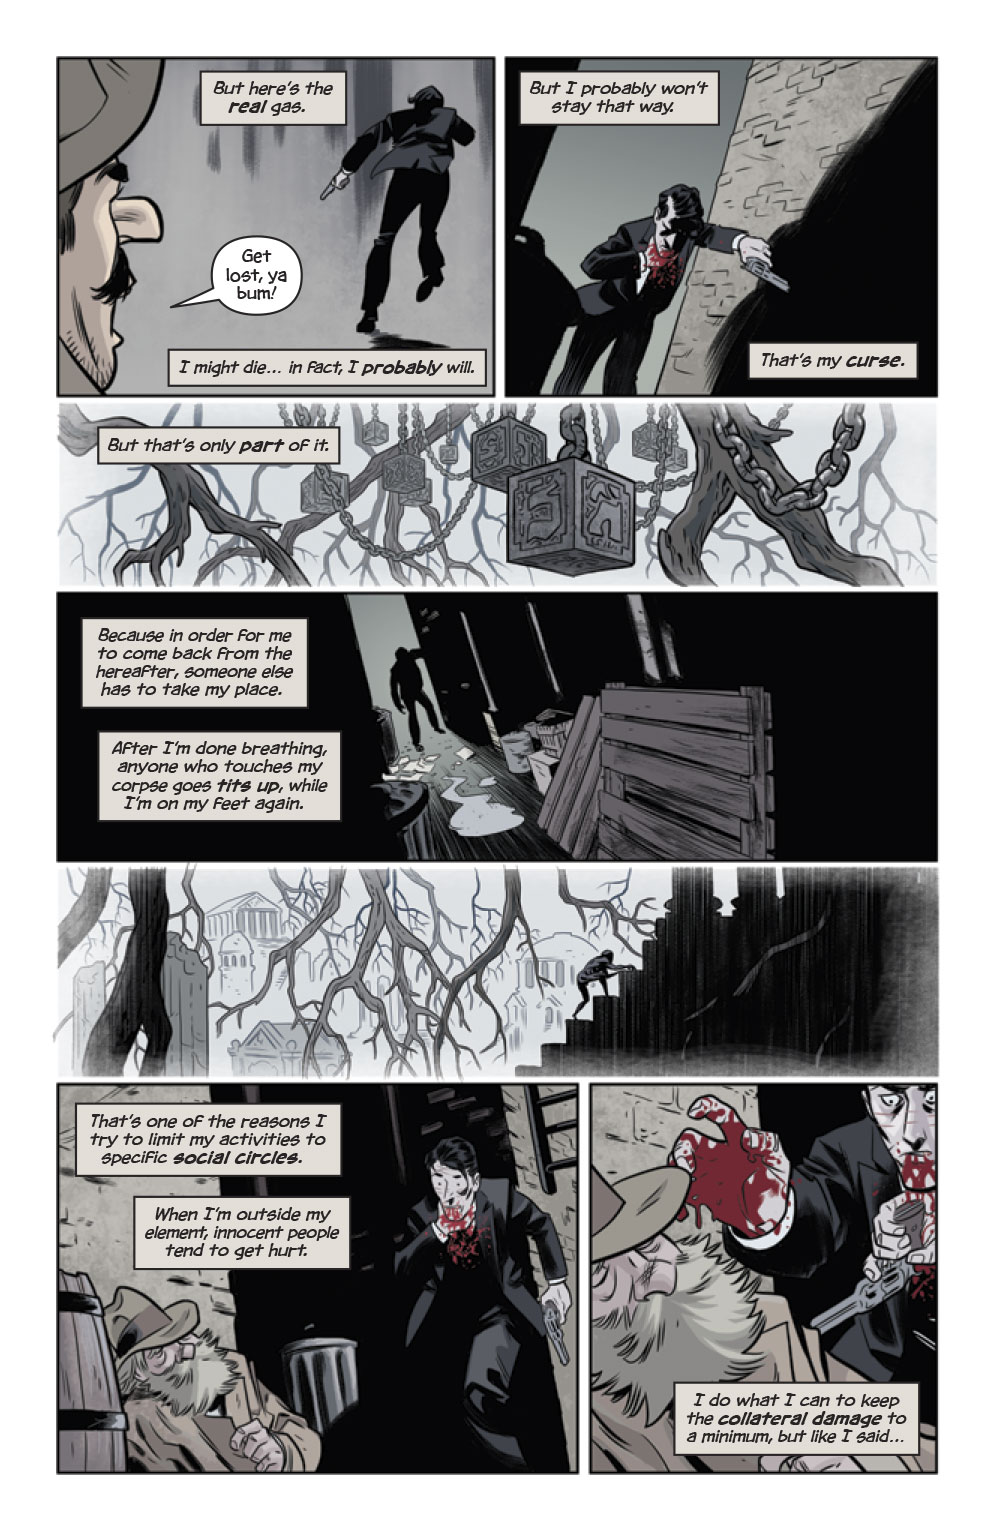 The Damned #1 preview page 3